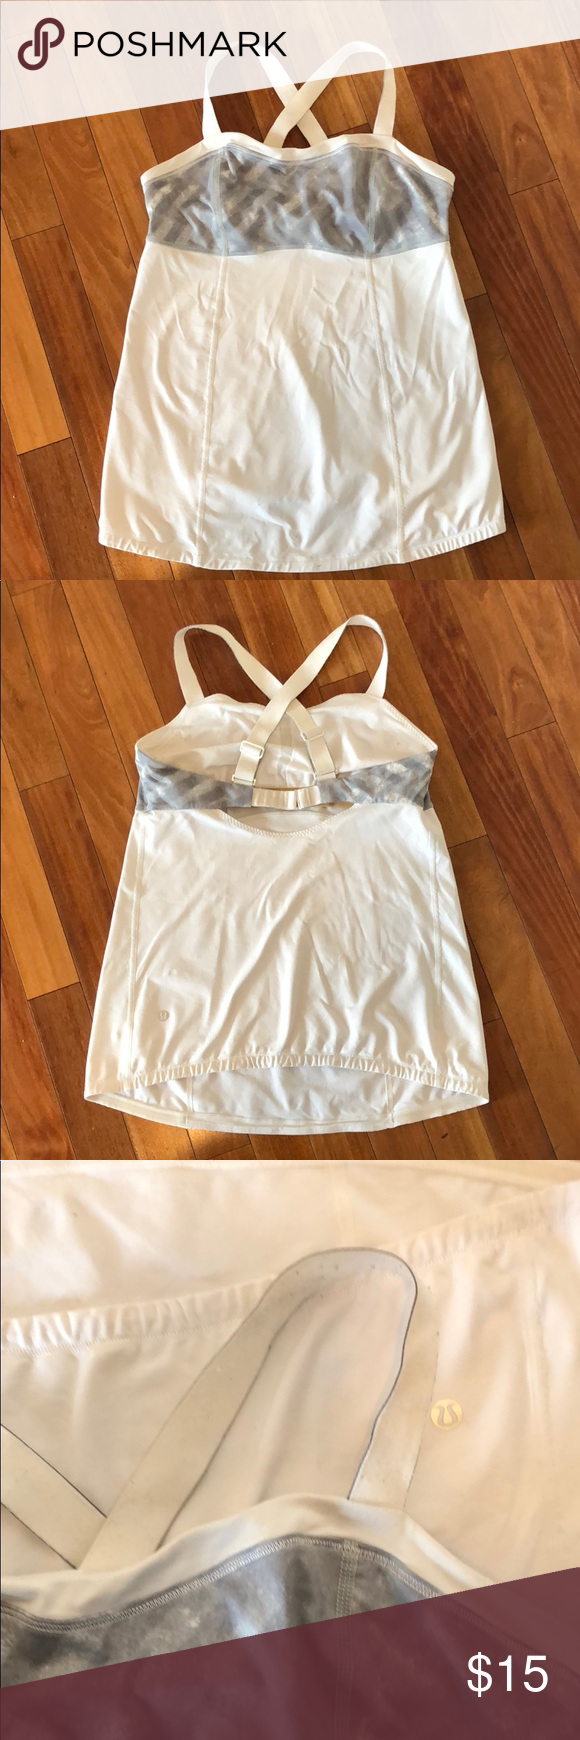 3164c39aef Lululemon Top Workout tank with built in bra. Please note pilling on straps  and small